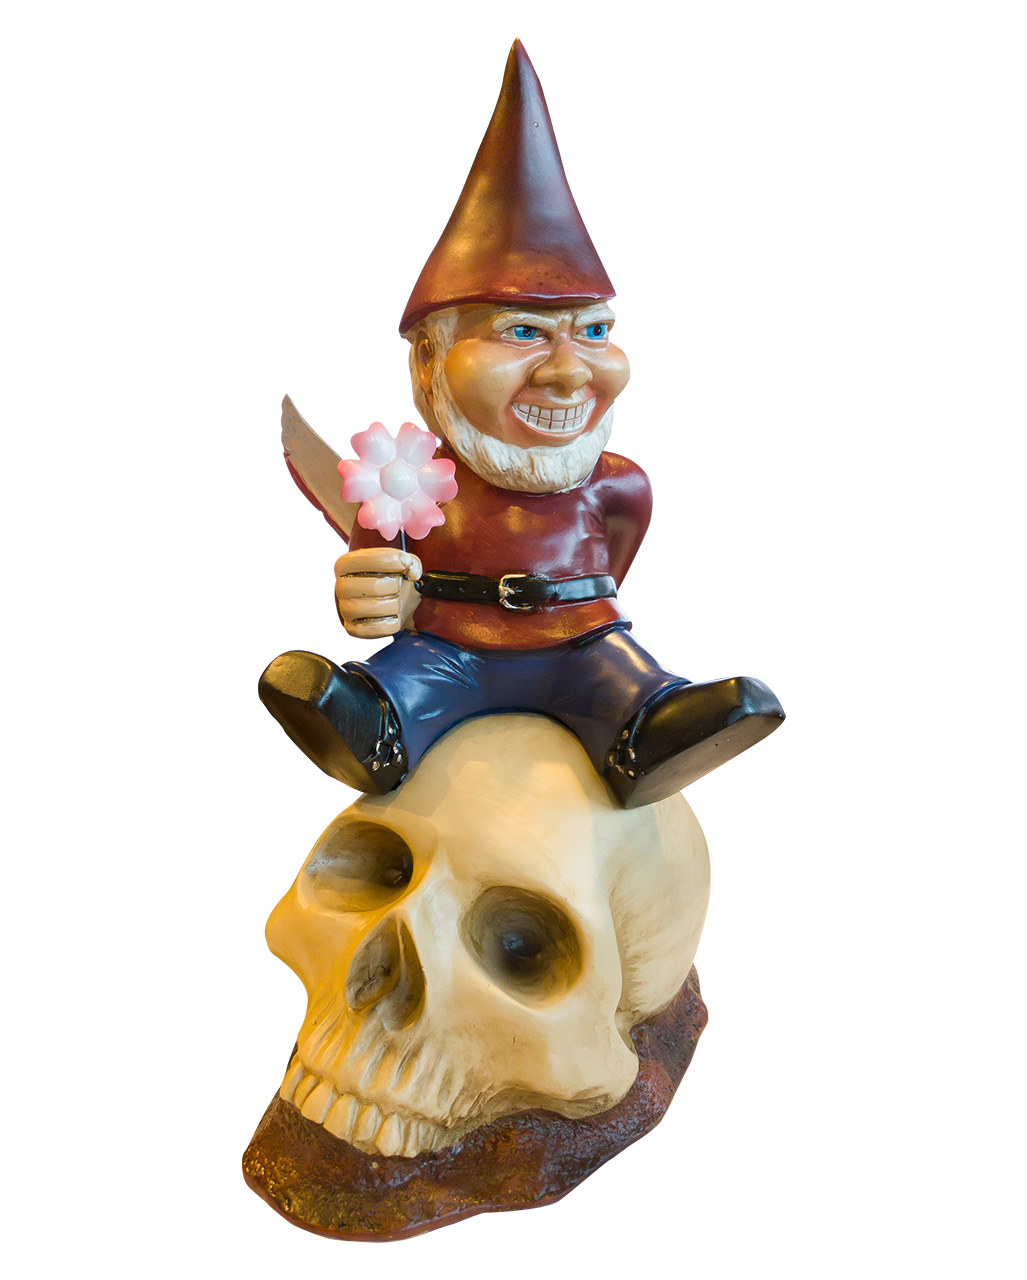 Garden Gnome Dwarf One Handed Walking Dead Zombie Figurine Statue Decor Horror